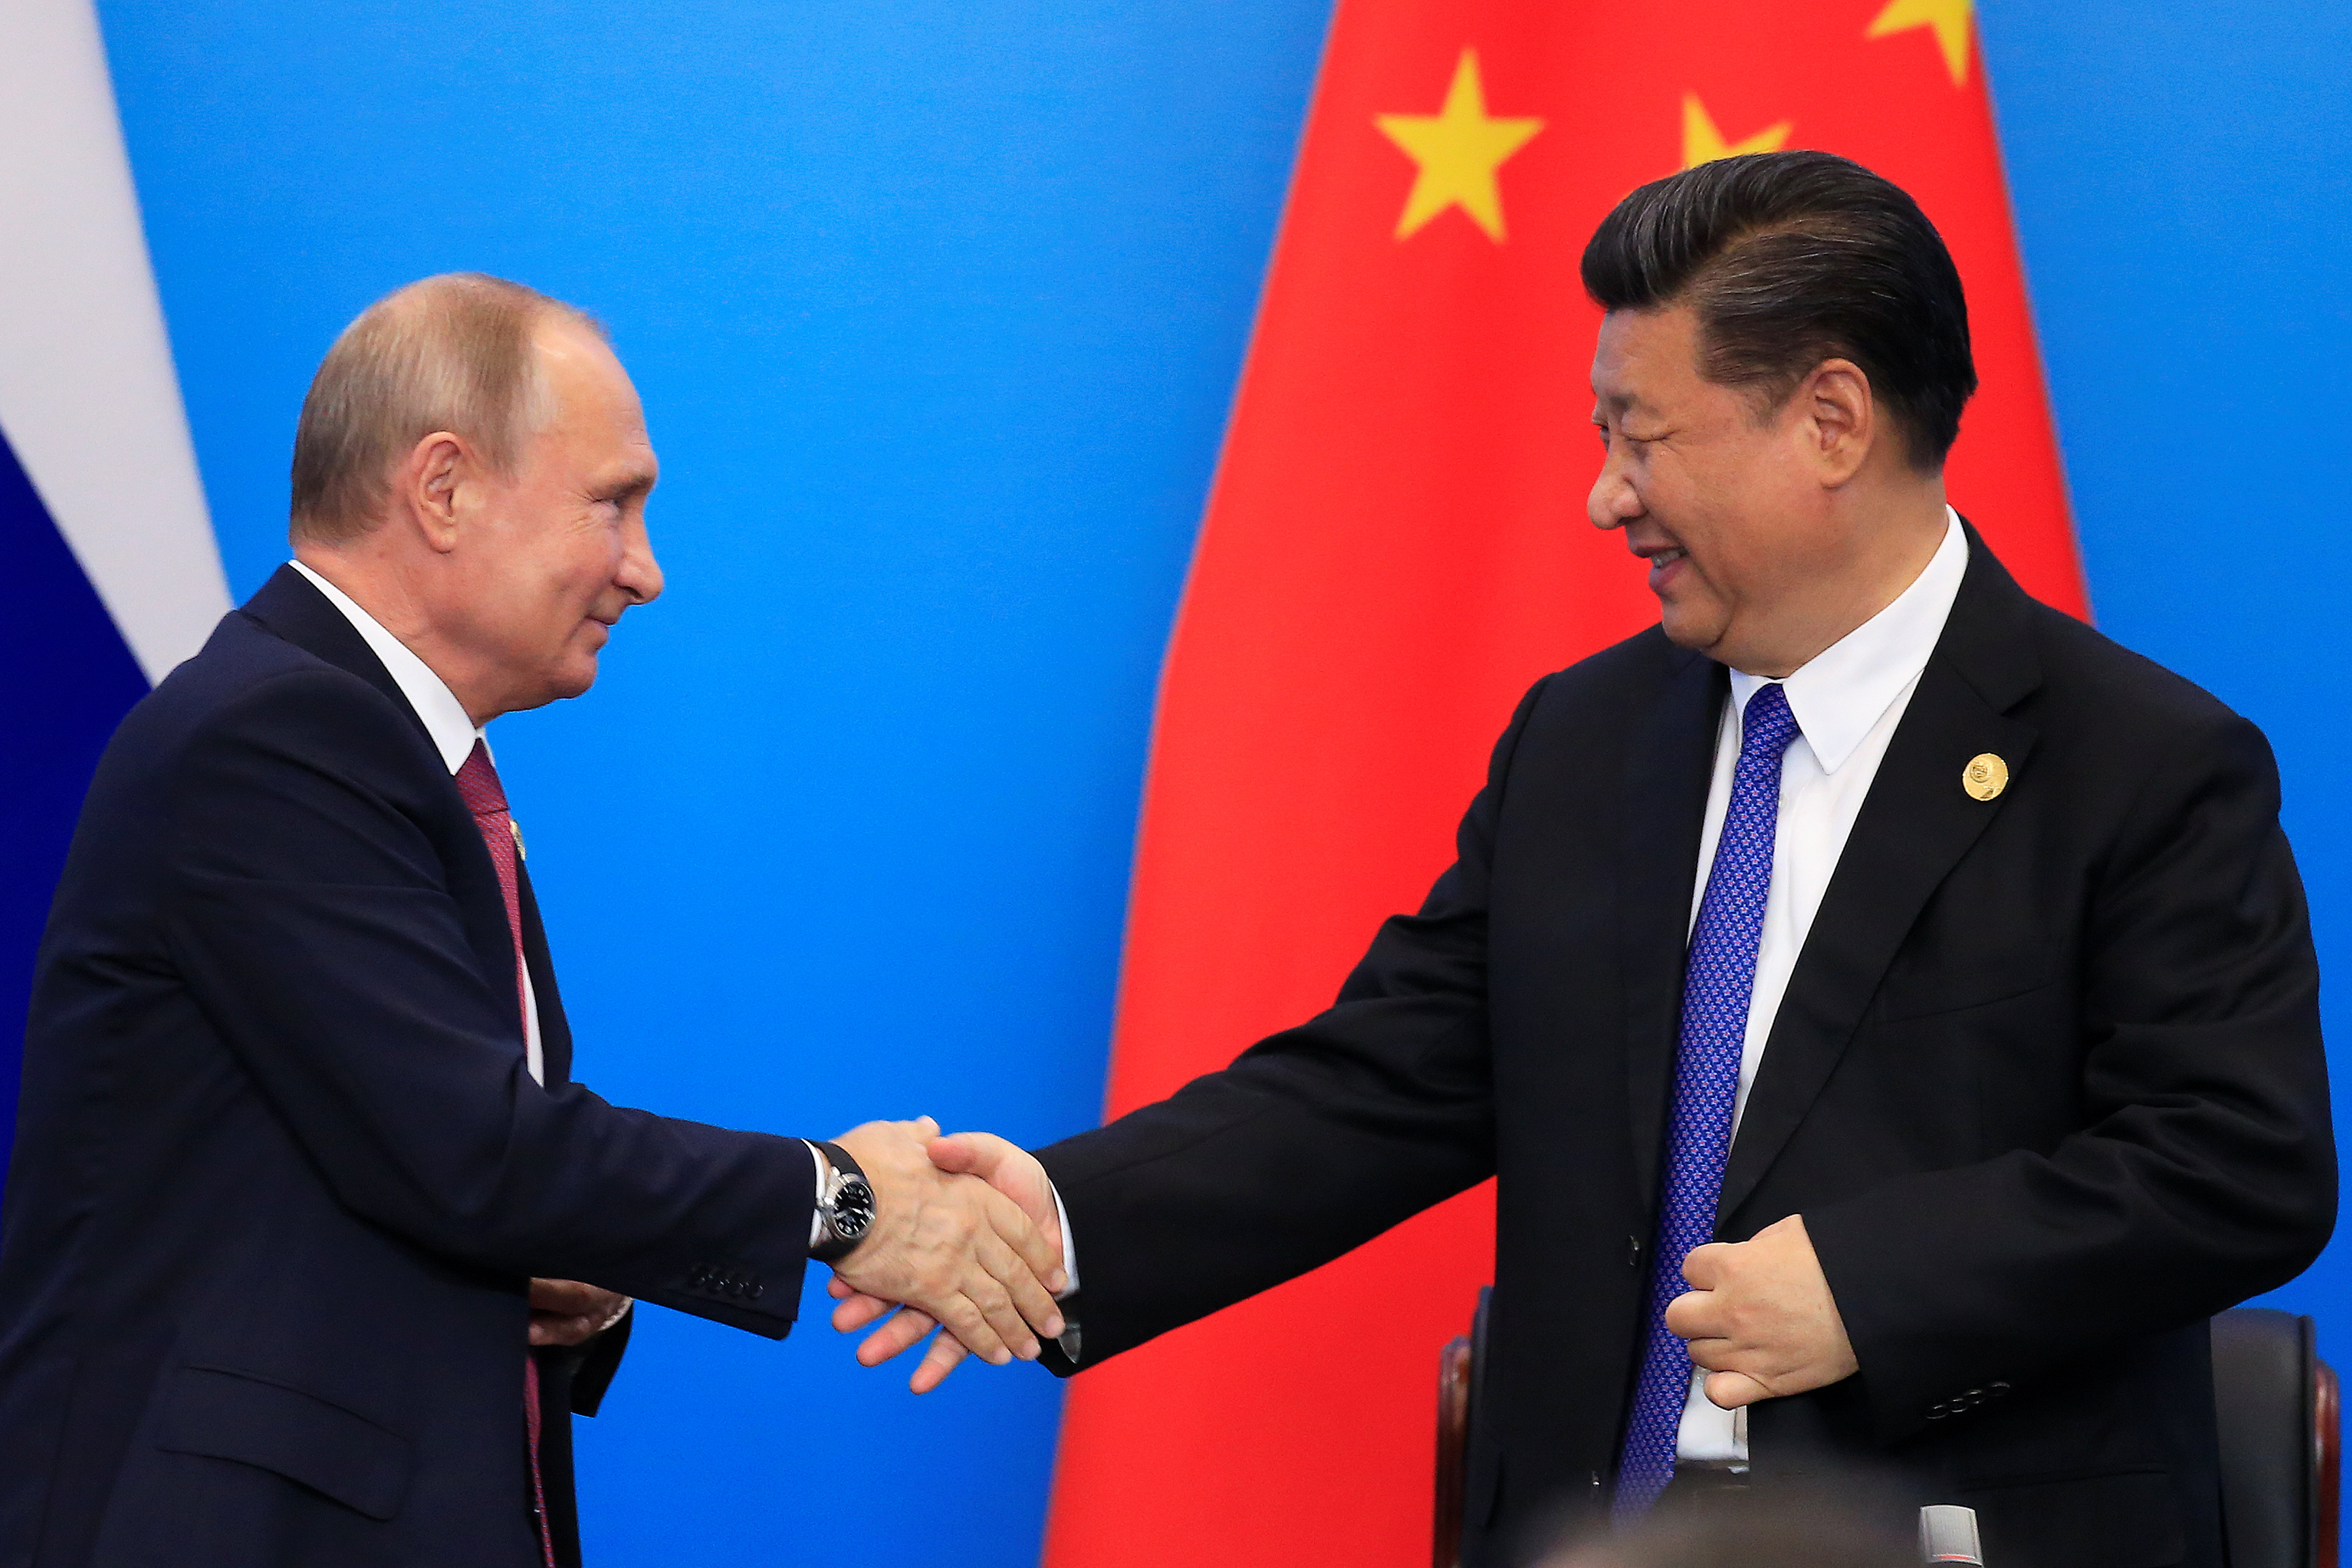 China's President Xi Jinping and Russia's President Vladimir Putin shake hands during Shanghai Cooperation Organization (SCO) summit in Qingdao, Shandong Province, China June 10, 2018.